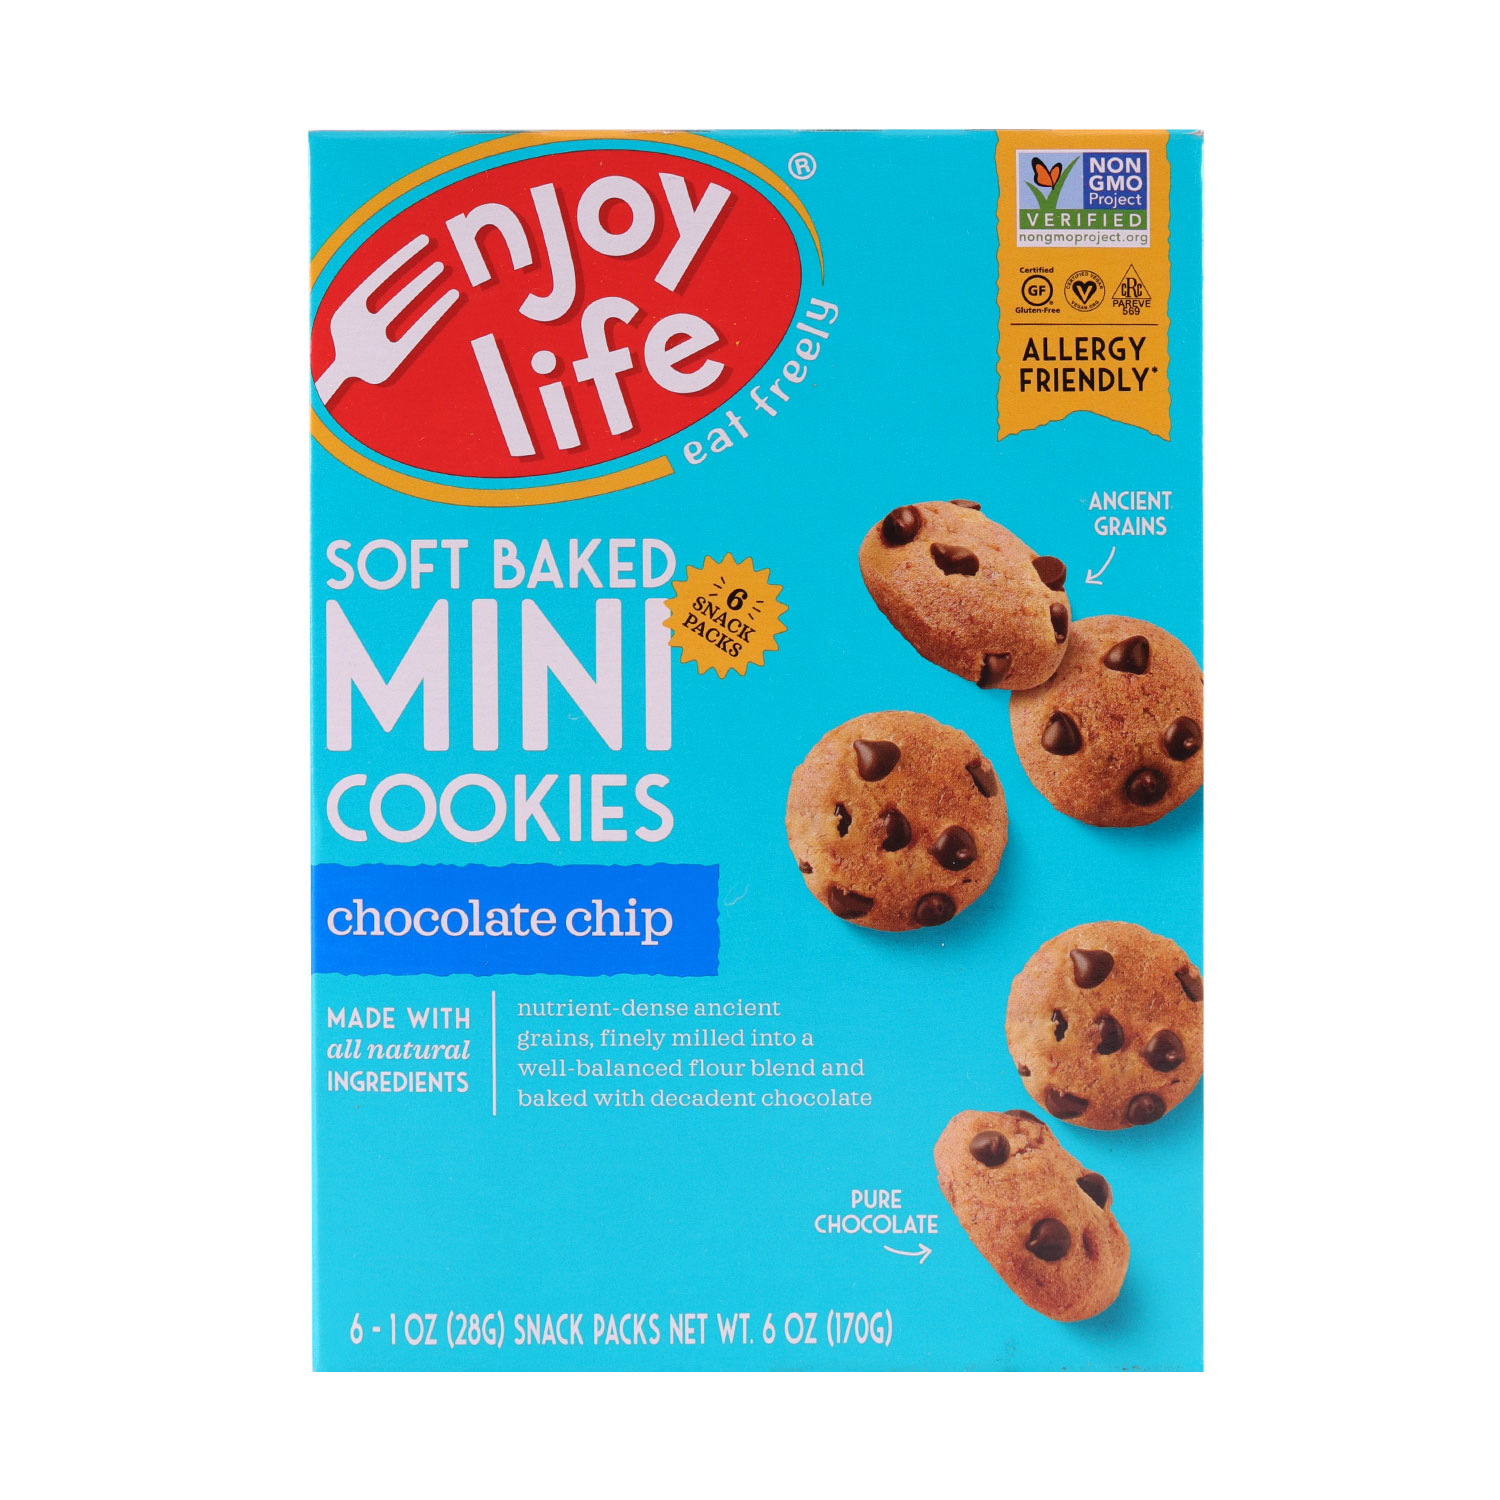 Soft Baked Cookies, MINI Chocolate Chip-Gluten Free